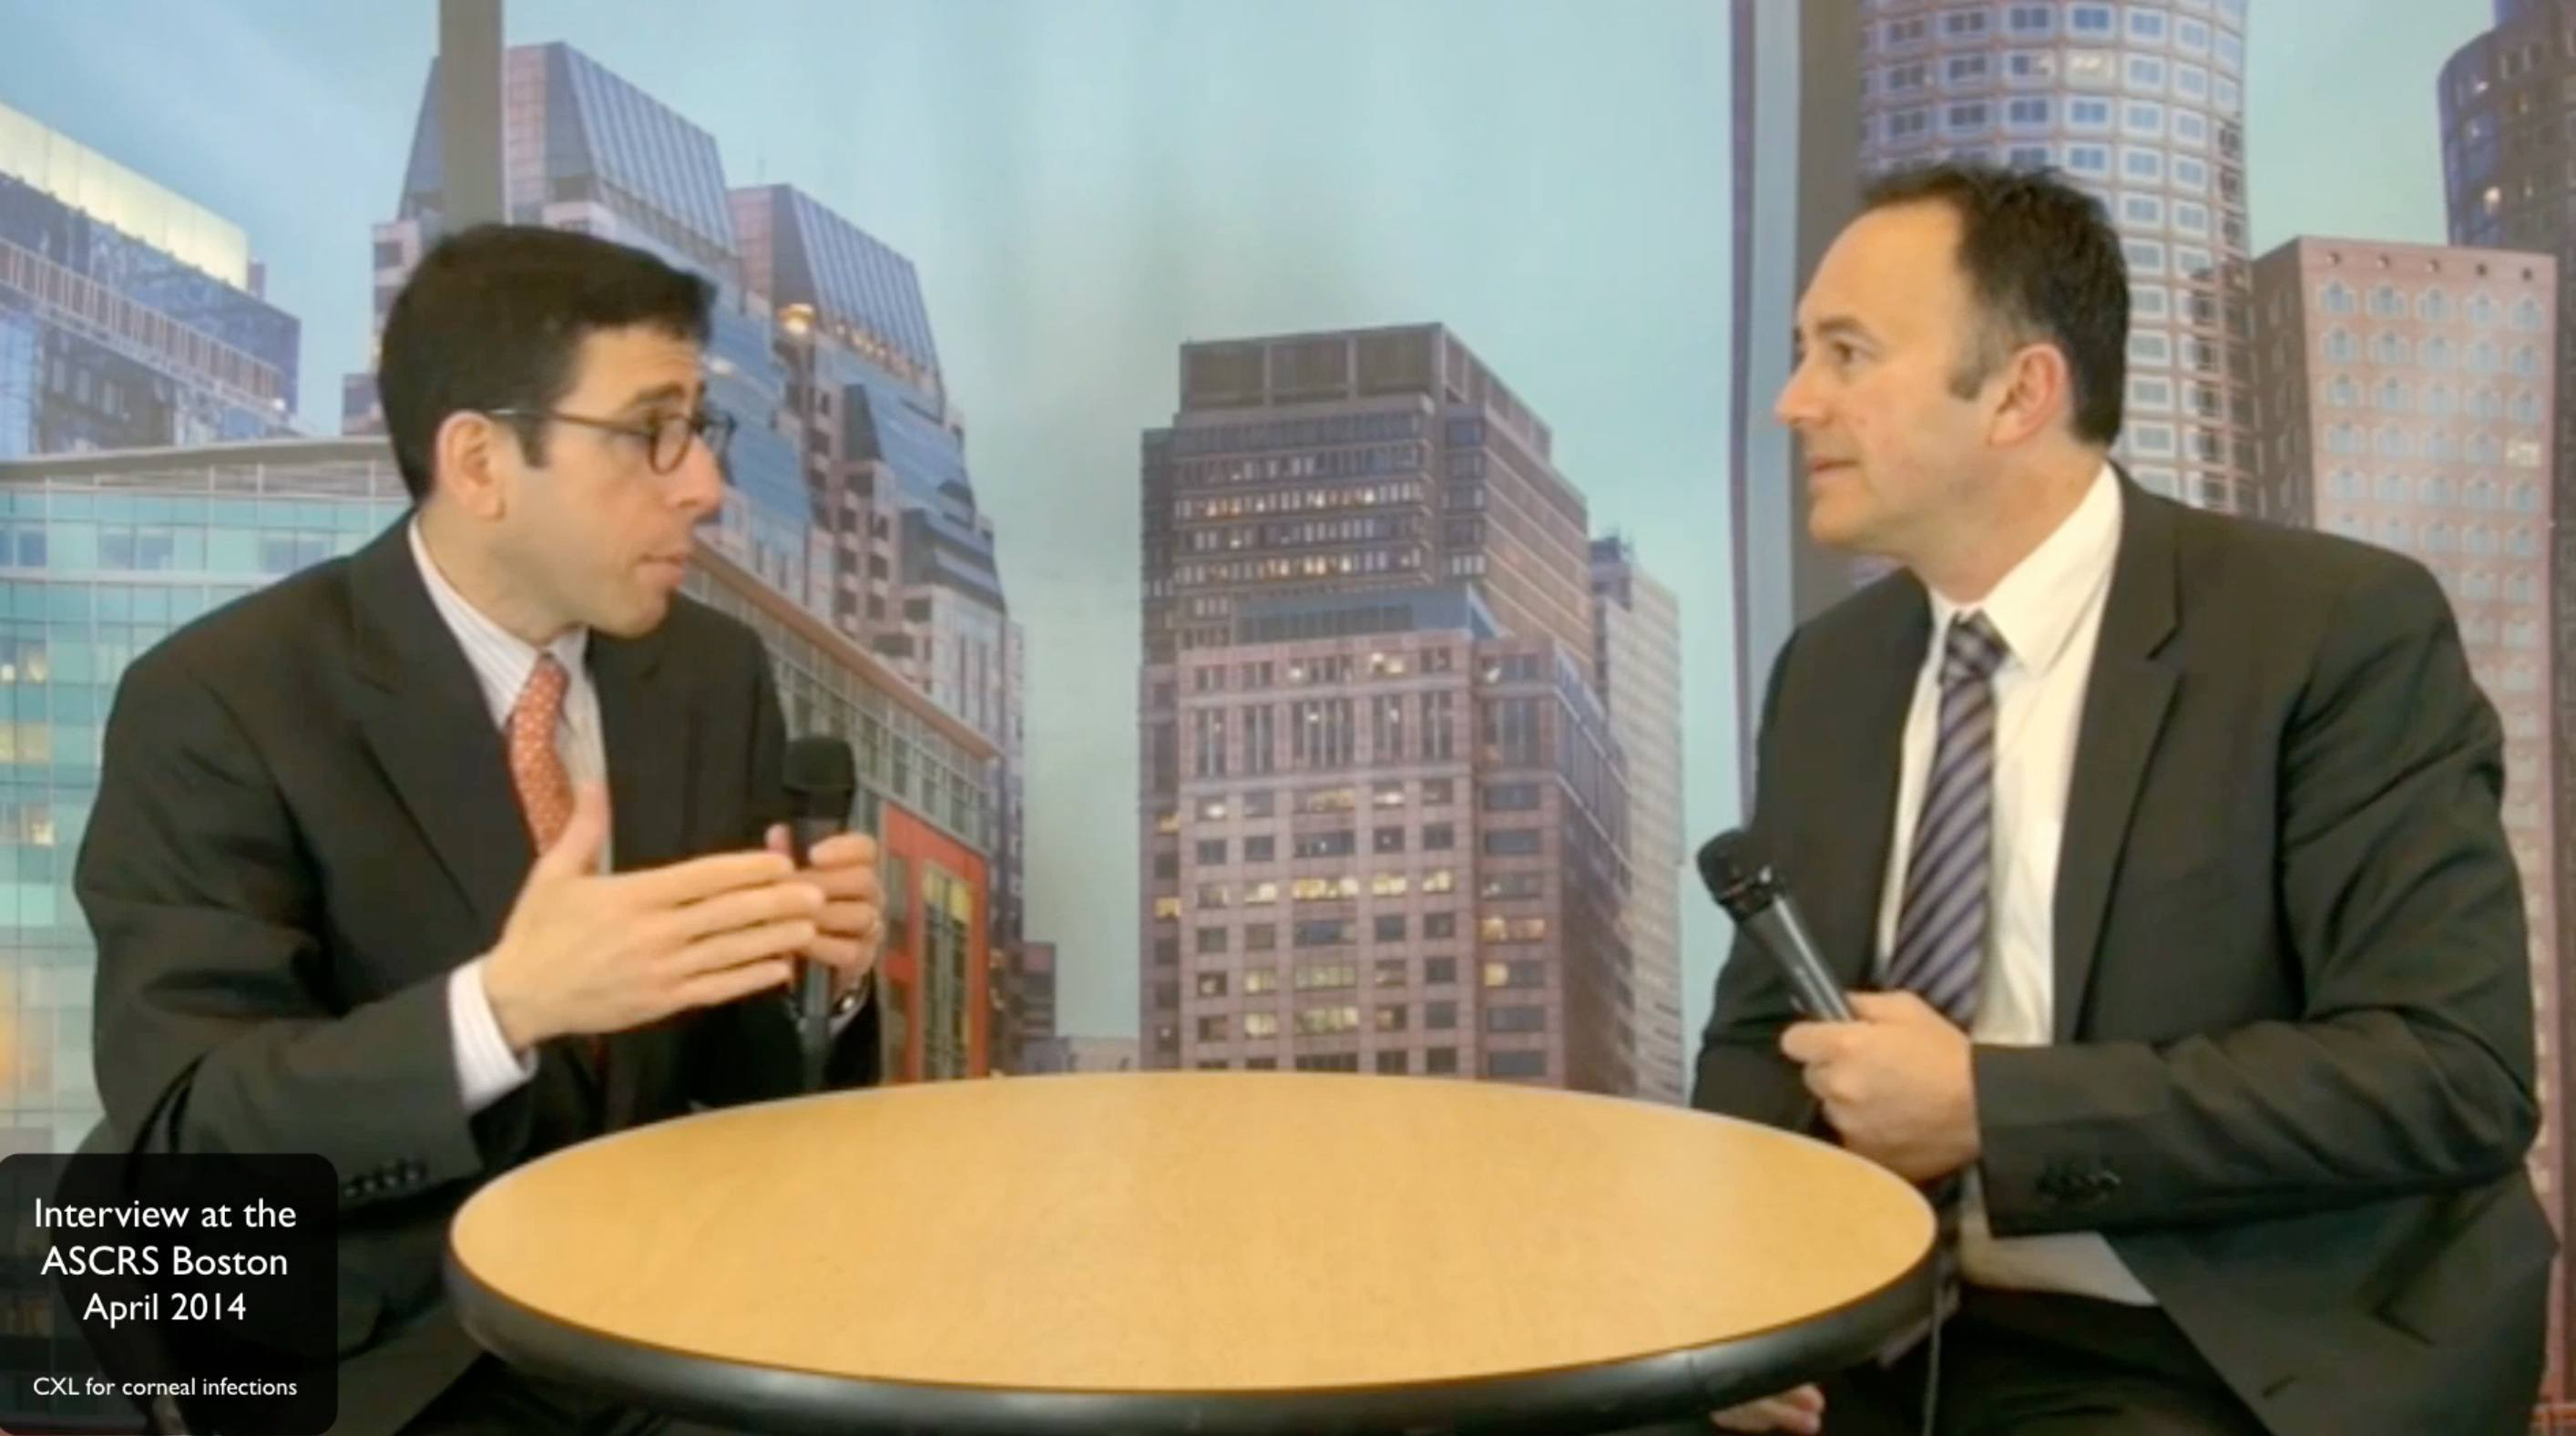 Video Interview on PACK-CXL at the ASCRS 2014 in Boston